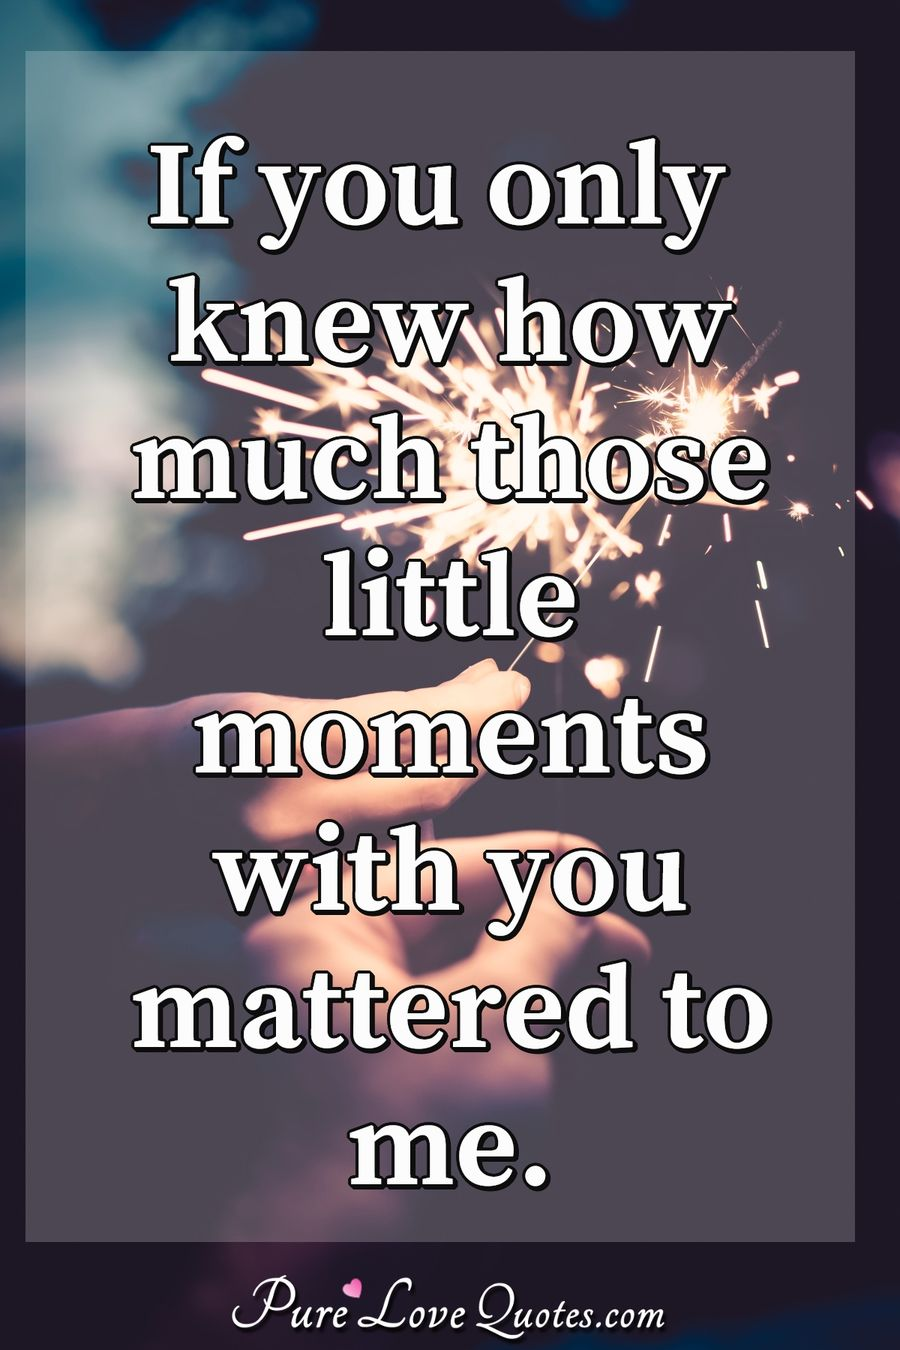 If you only knew how much those little moments with you ...